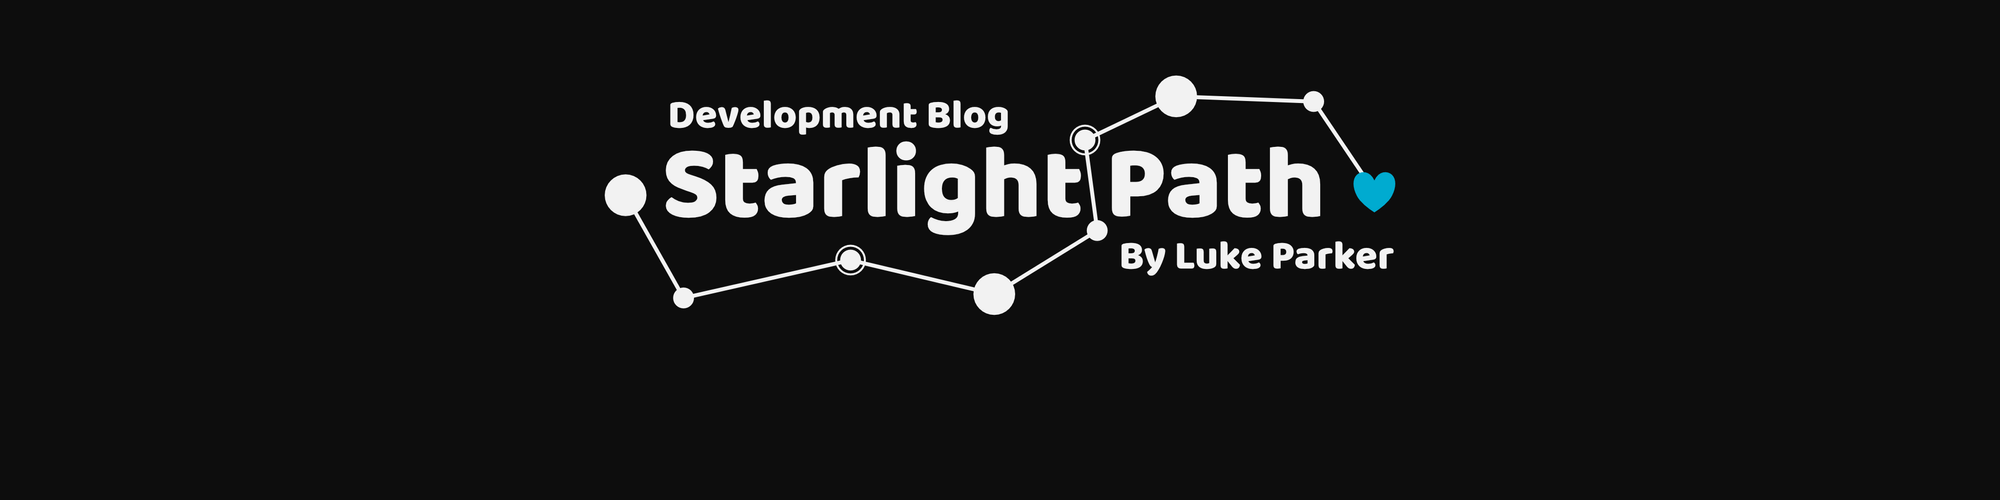 Starlight Path - Dev blog #1